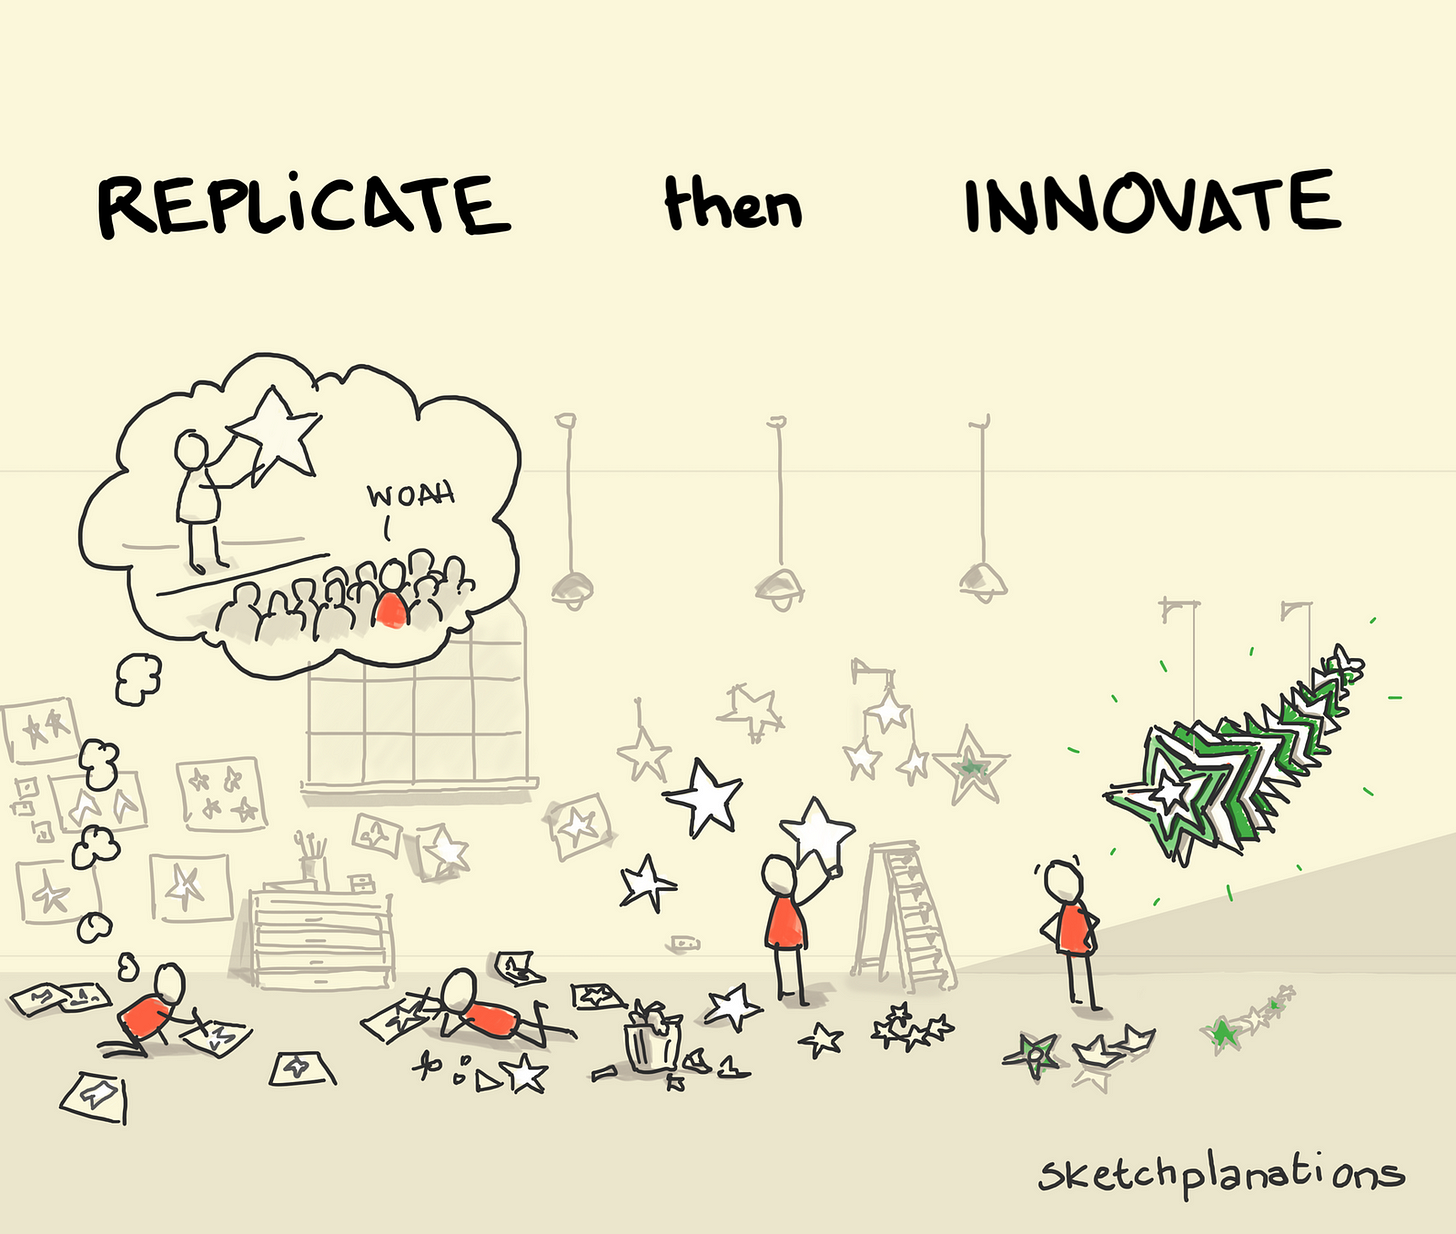 Replicate then innovate - Sketchplanations